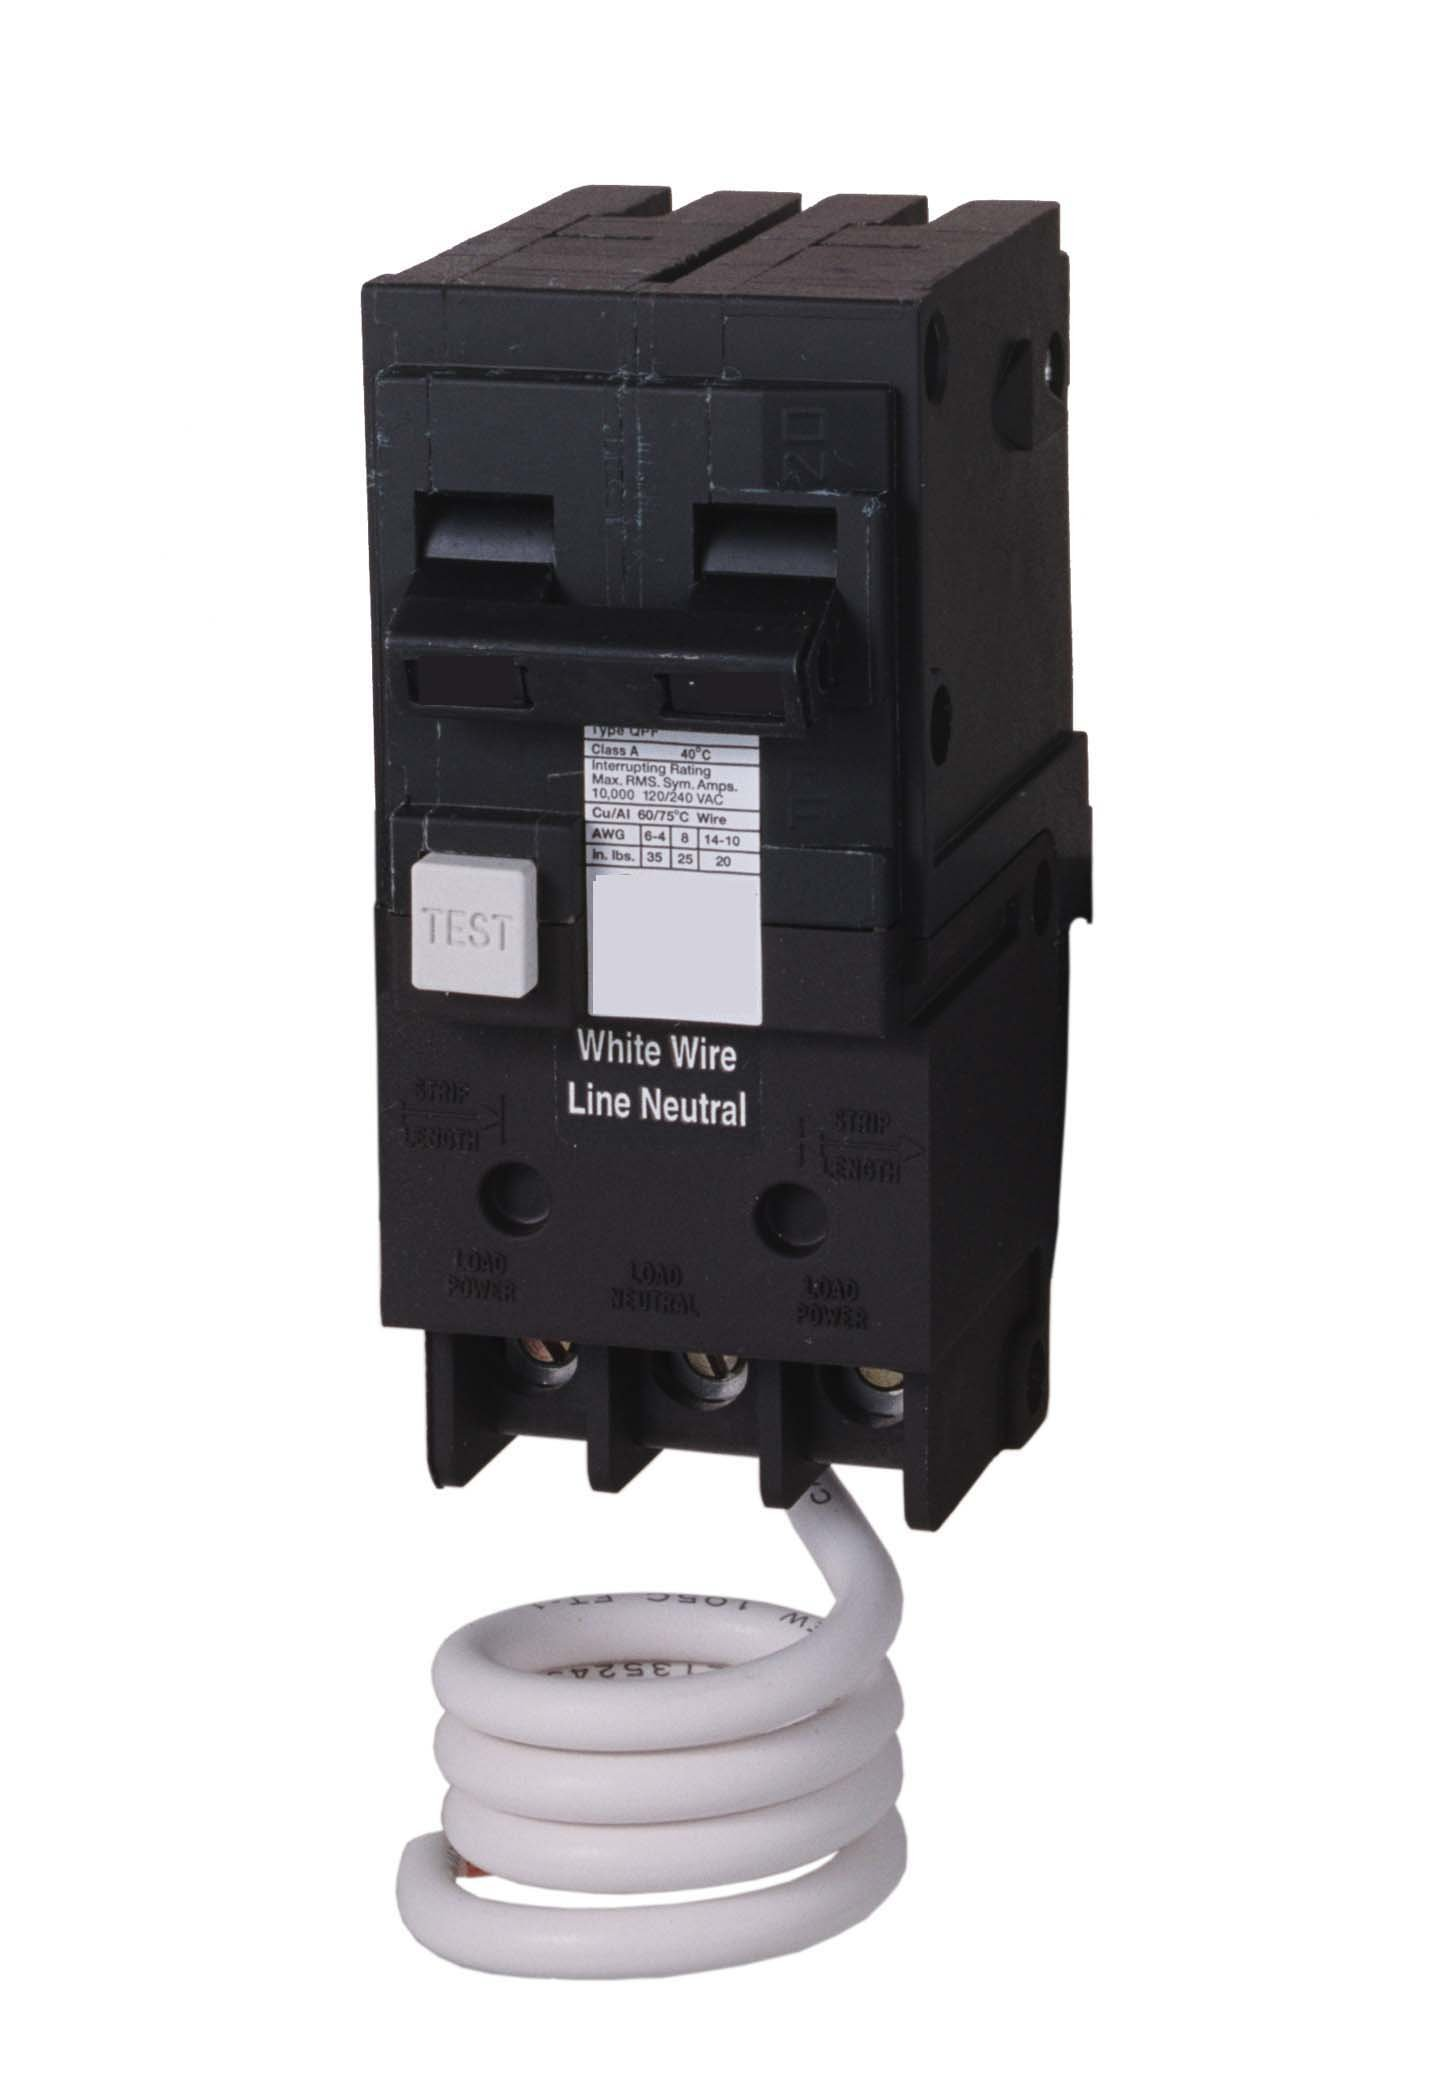 Siemens QF220H 20-Amp Double Pole 120/240-Volt type QPF Ground Fault Circuit Interrupter